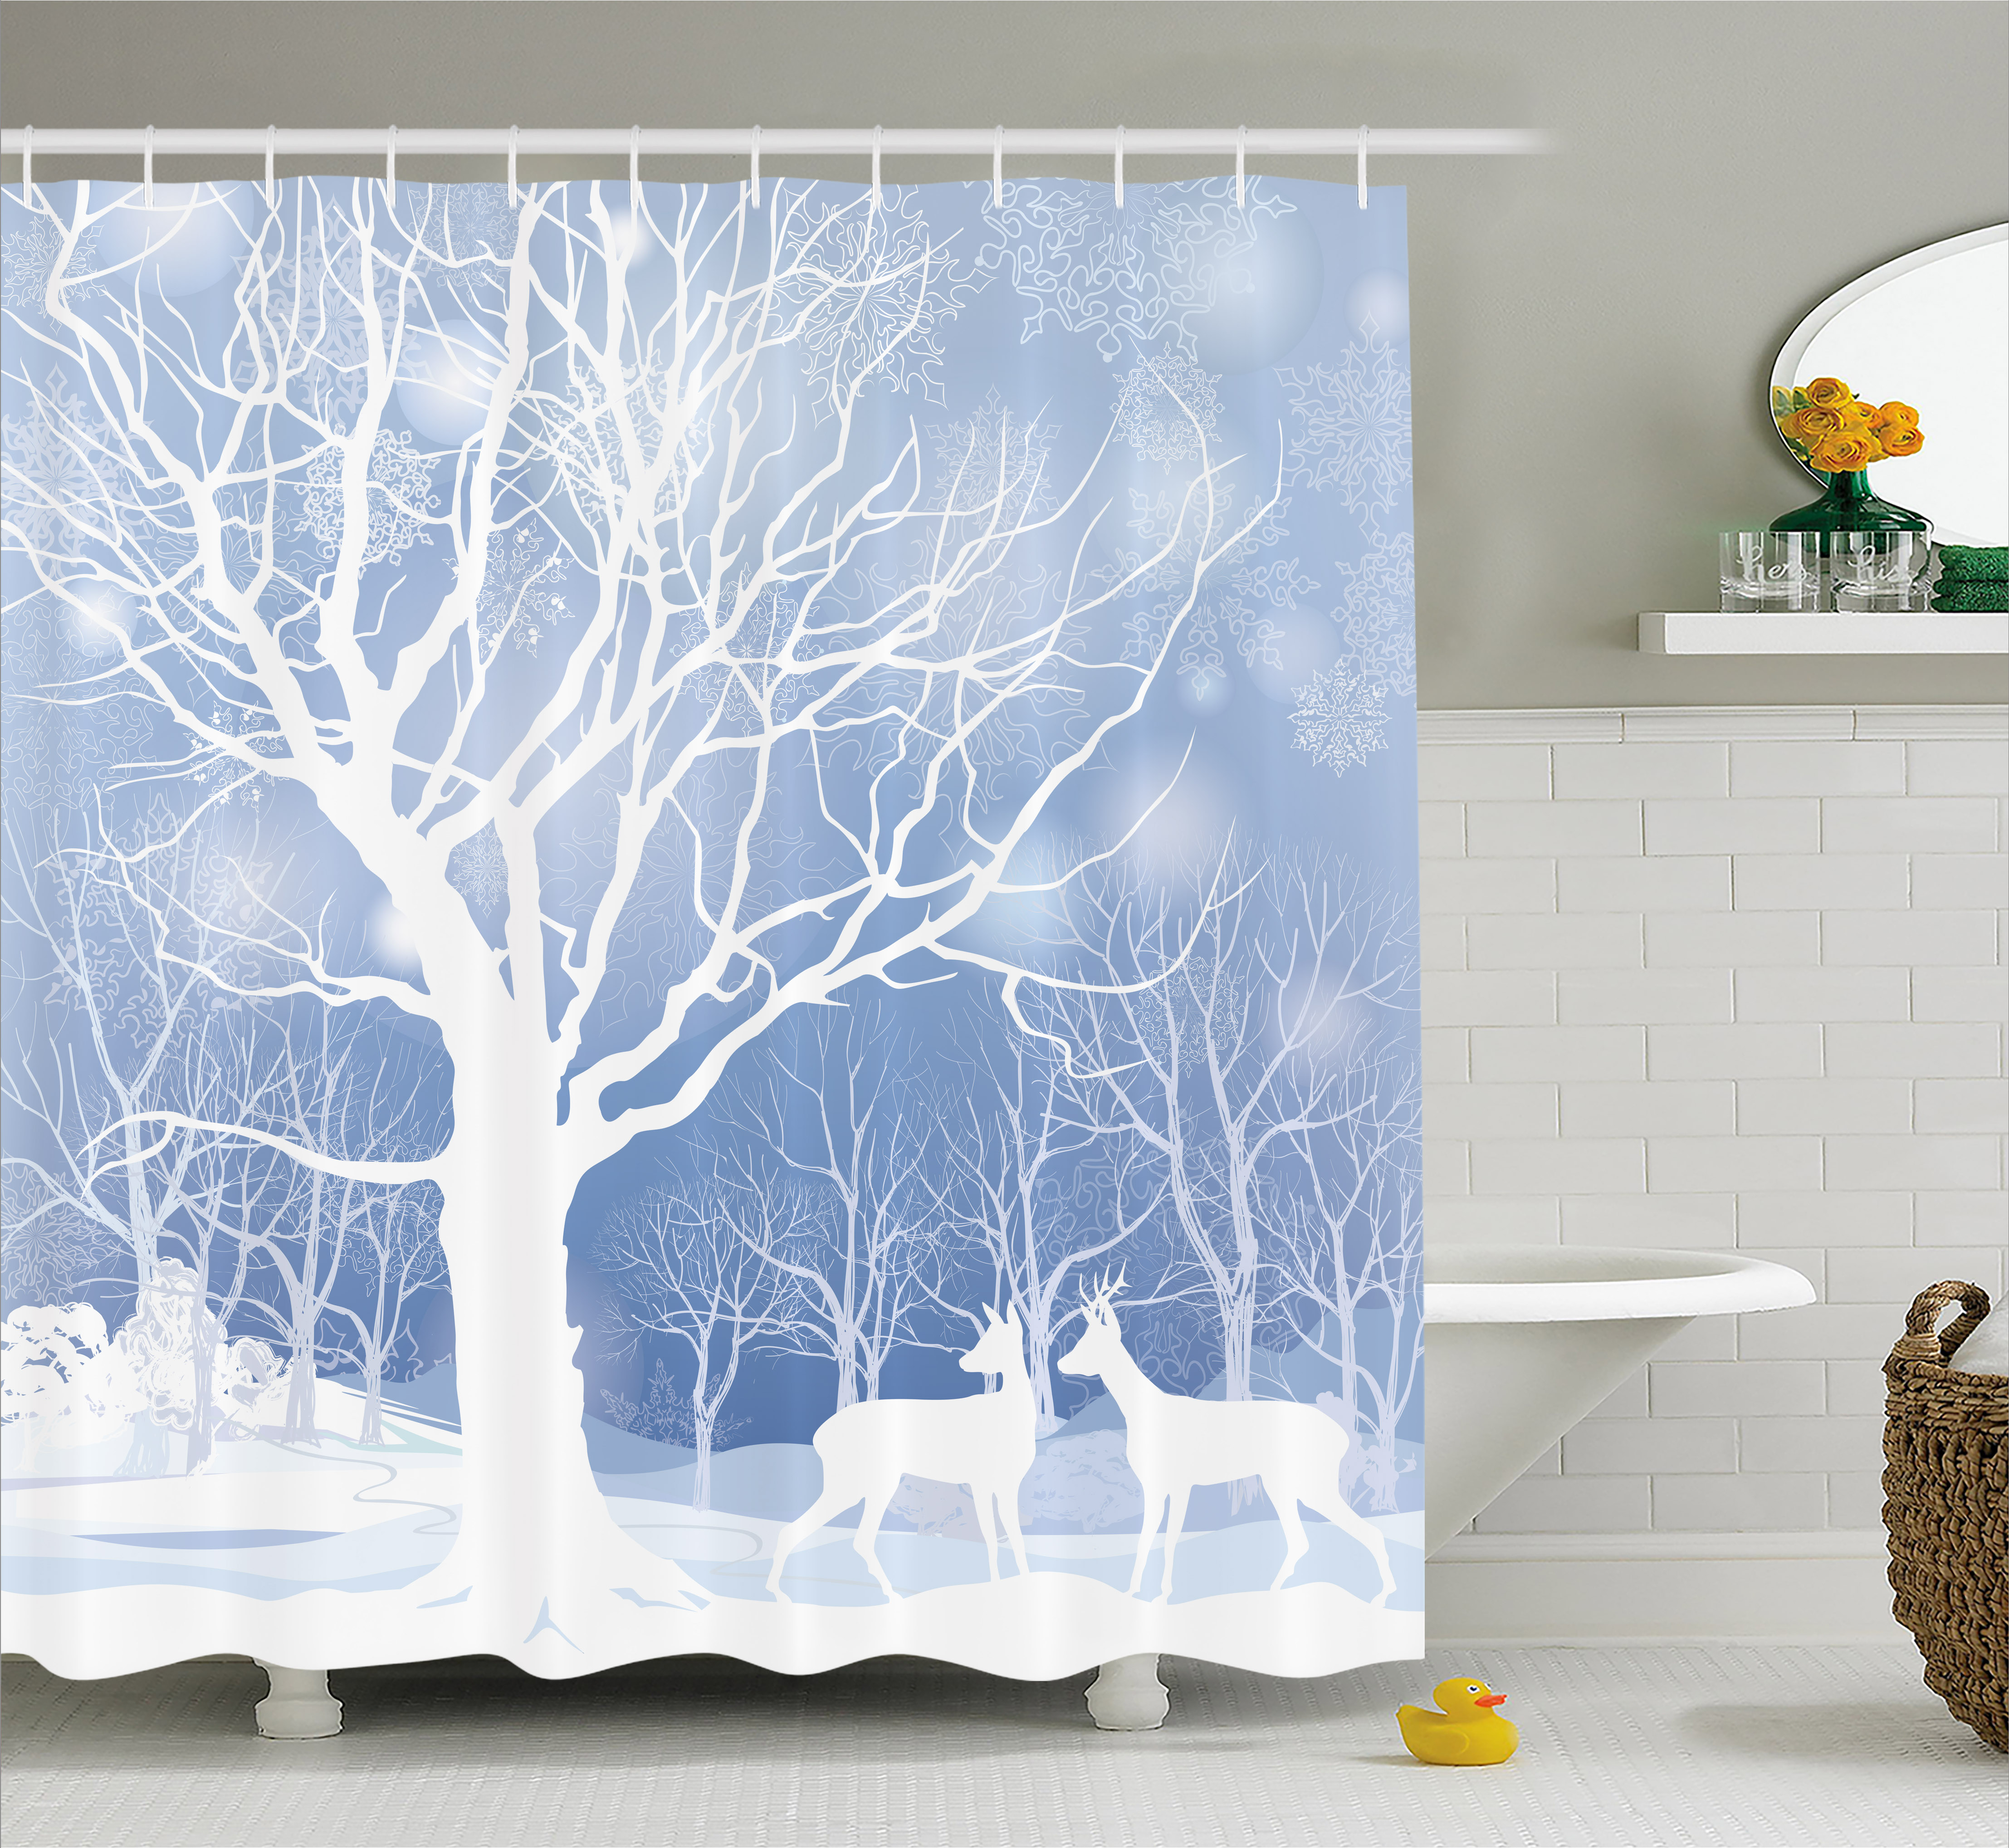 Winter Shower Curtain, Abstract Winter Imagery With Snowy Weather Deer And  Other Animals Seasonal Theme